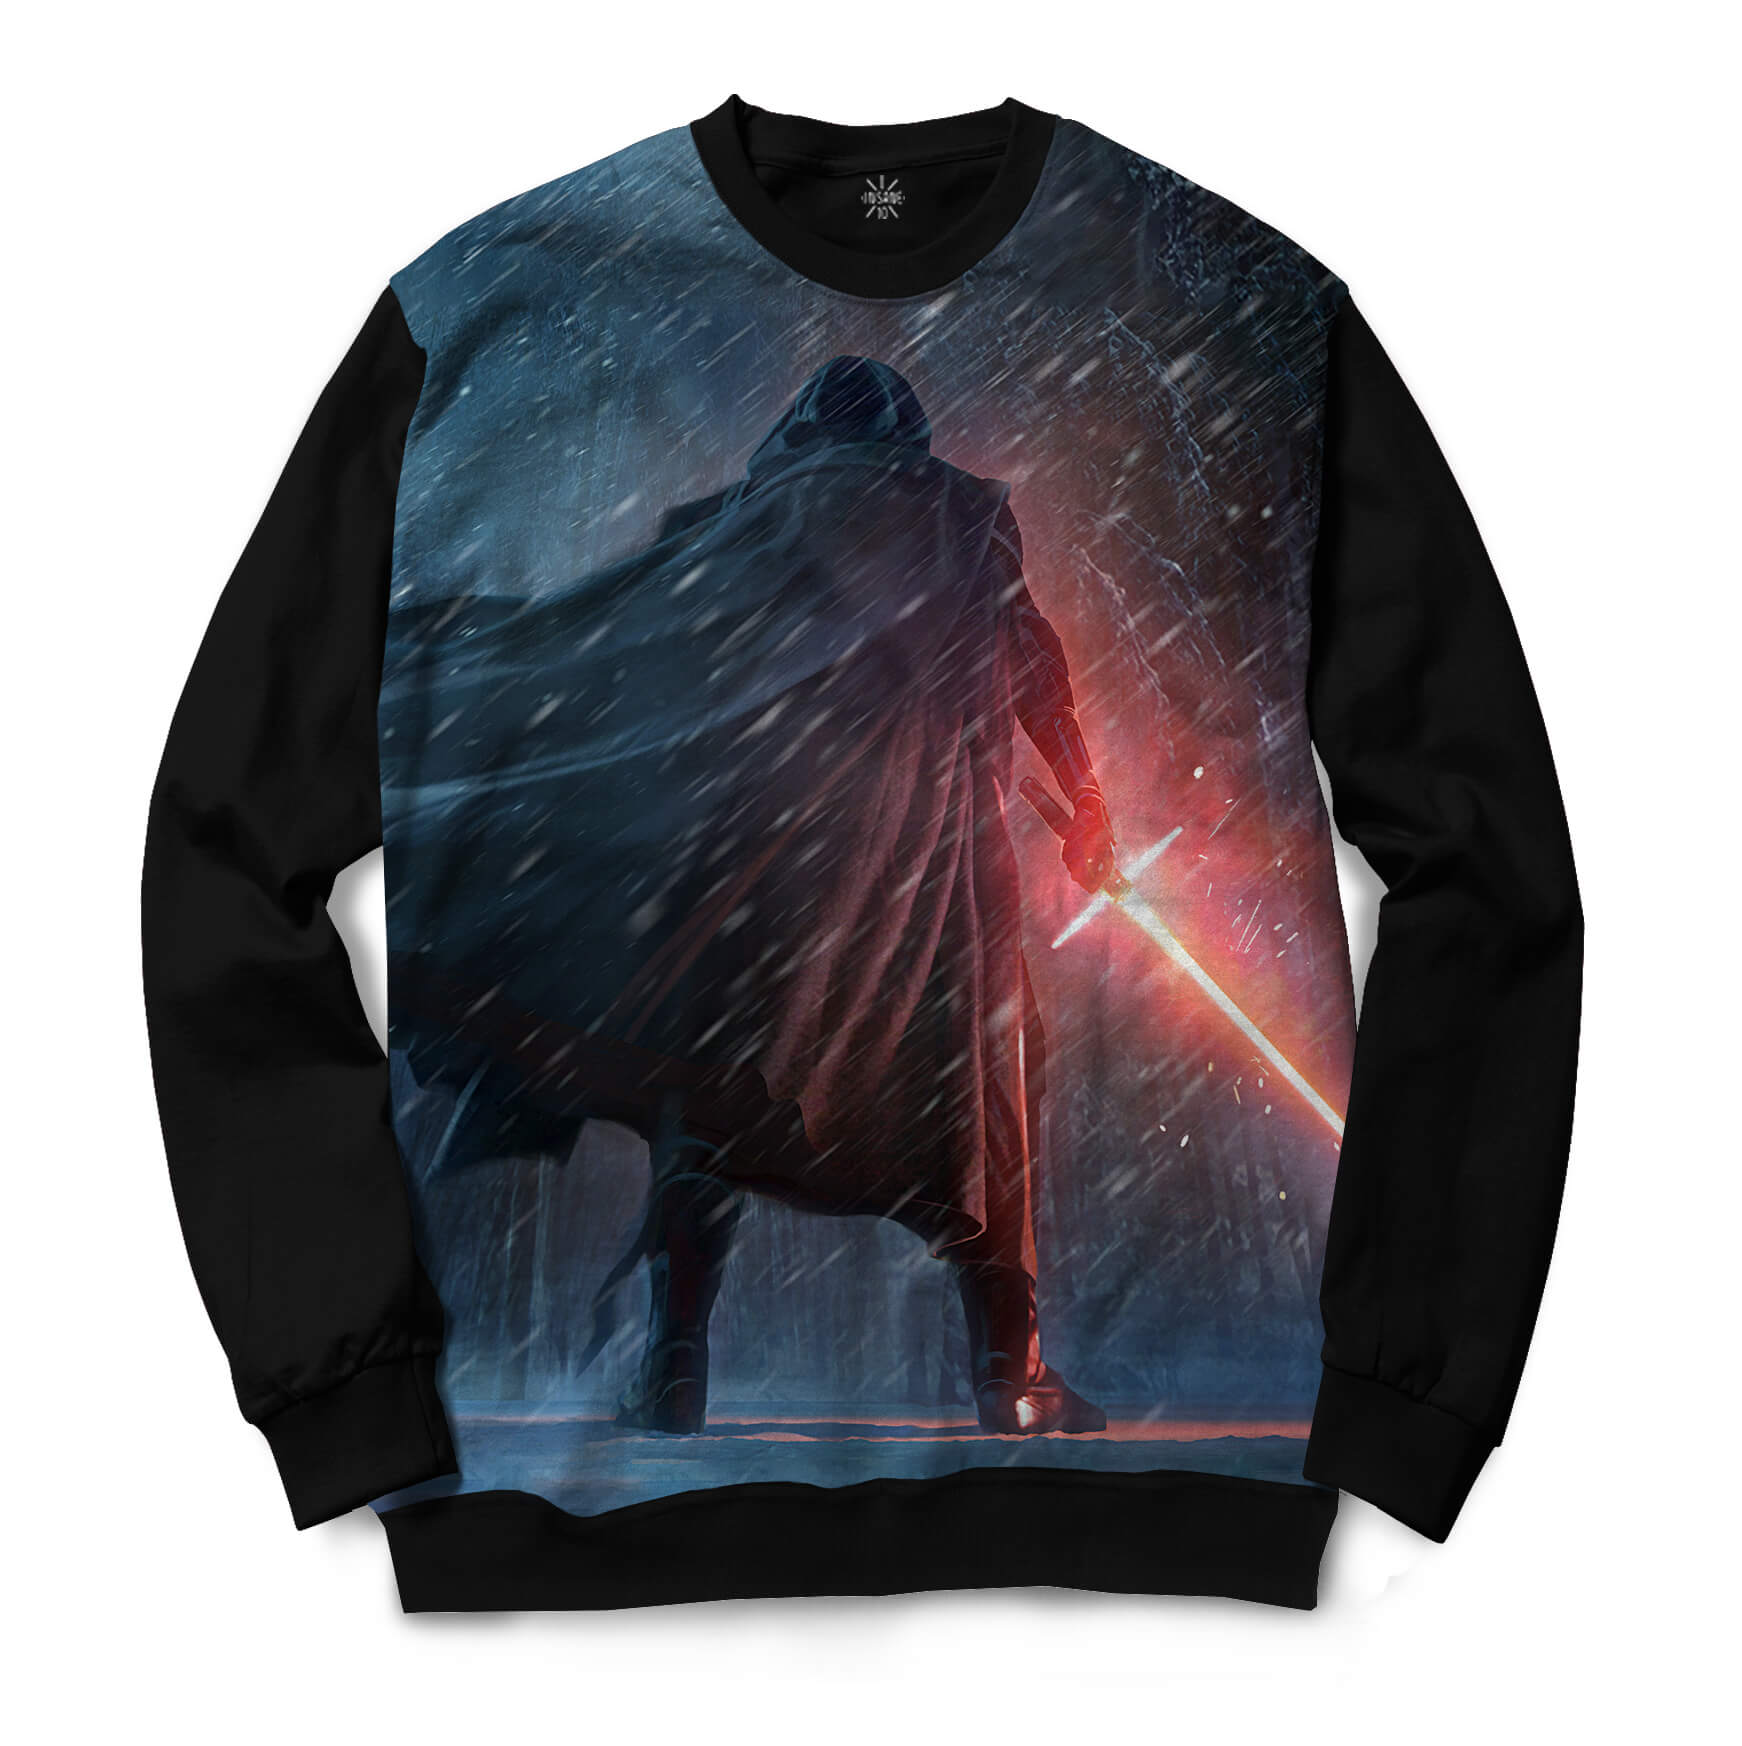 Moletom Gola Careca BSC Star Wars Kylo Ren de Costas Sublimada Azul